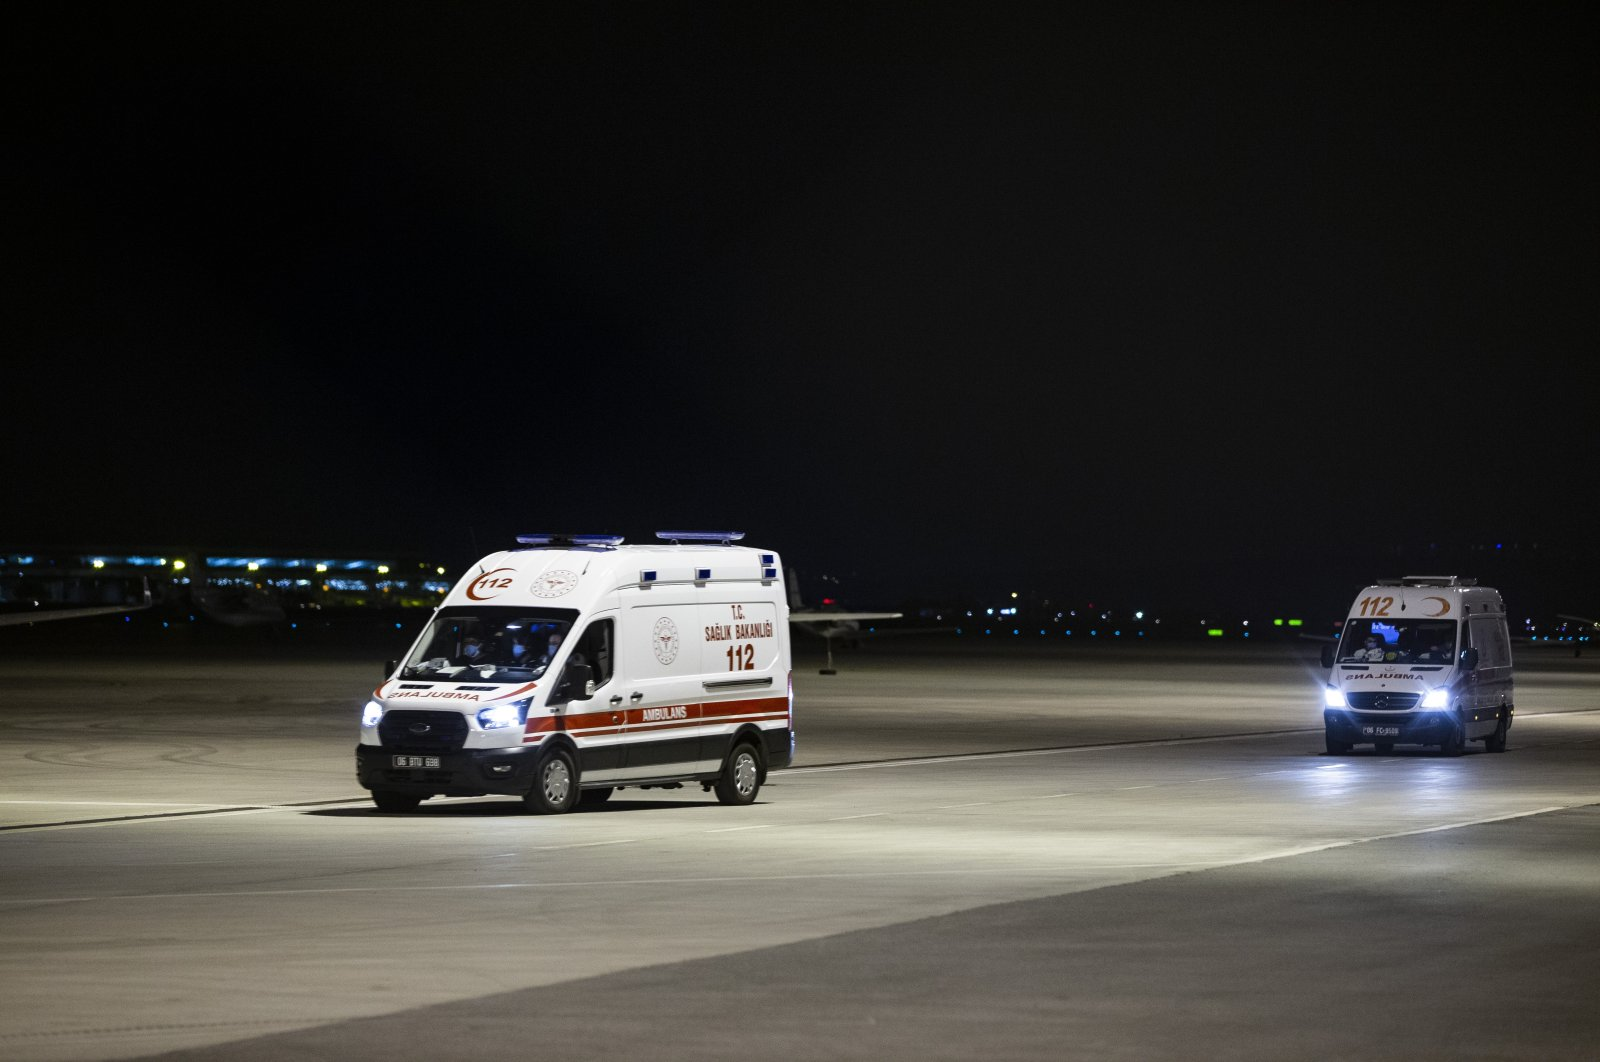 Ambulances carry patients arriving from the Turkish Republic of Northern Cyprus (TRNC), at Esenboğa Airport, in the capital Ankara, Turkey, Sept. 9, 2020. (AA Photo)